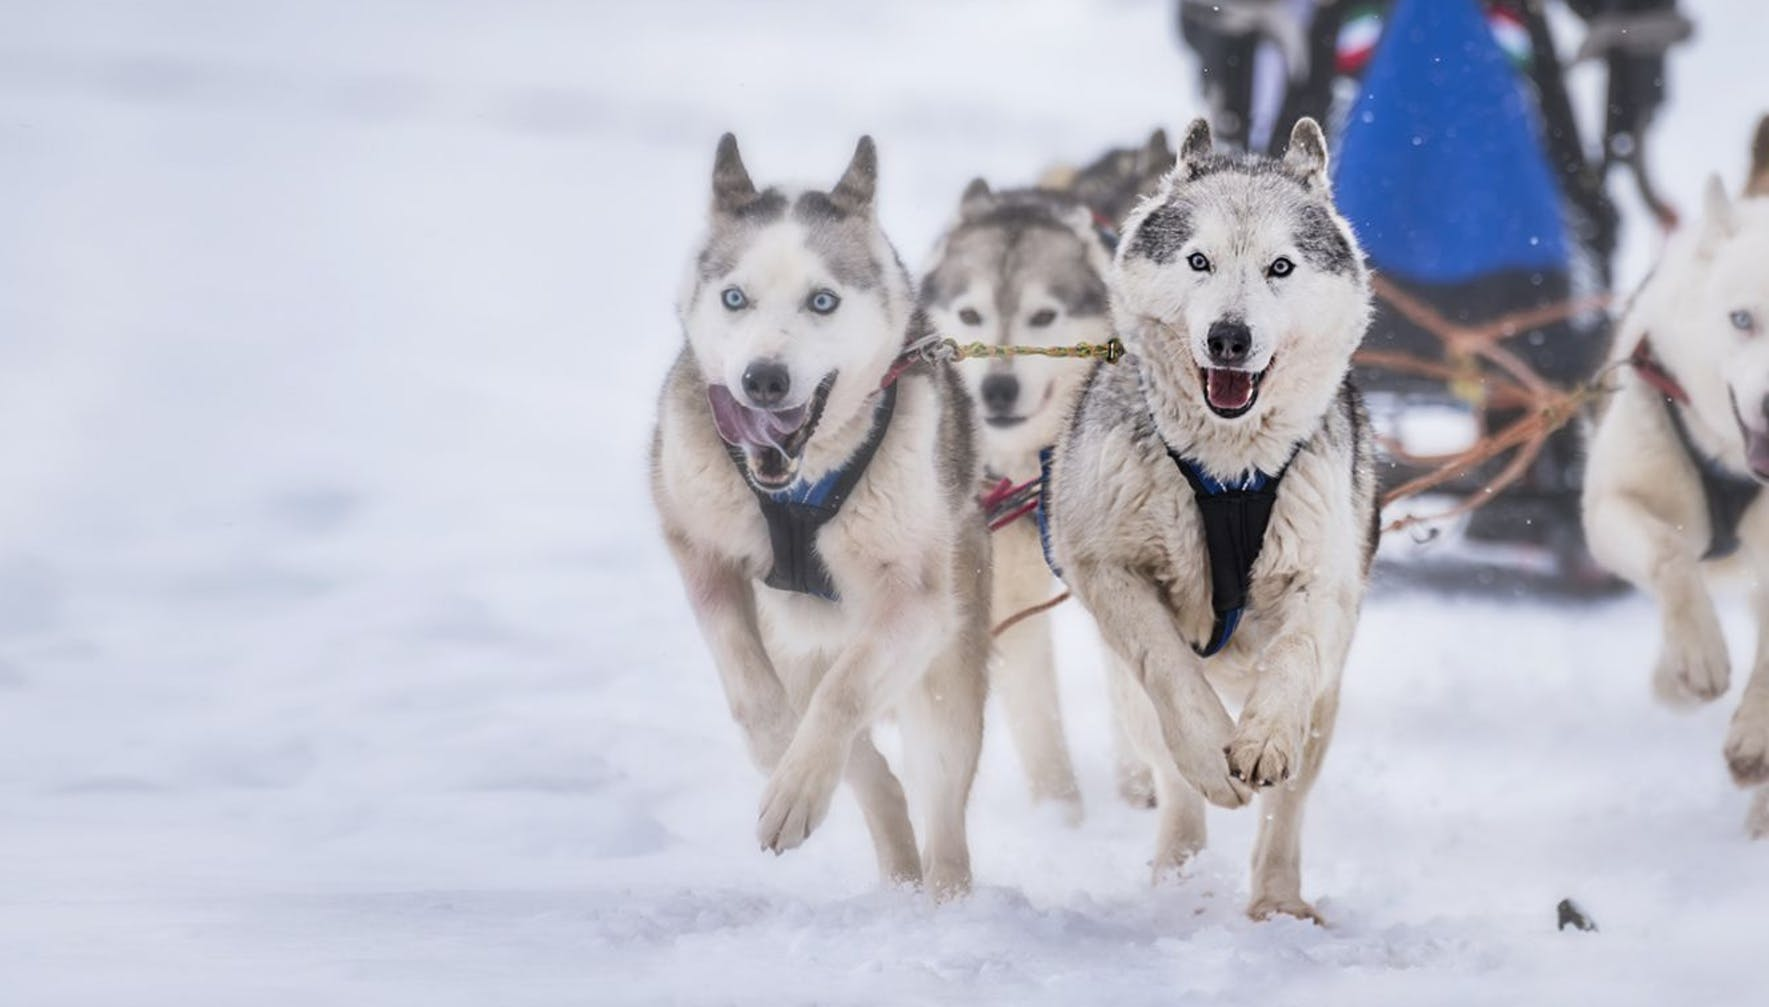 Pack of Siberian Huskies pulling a sled in the snow